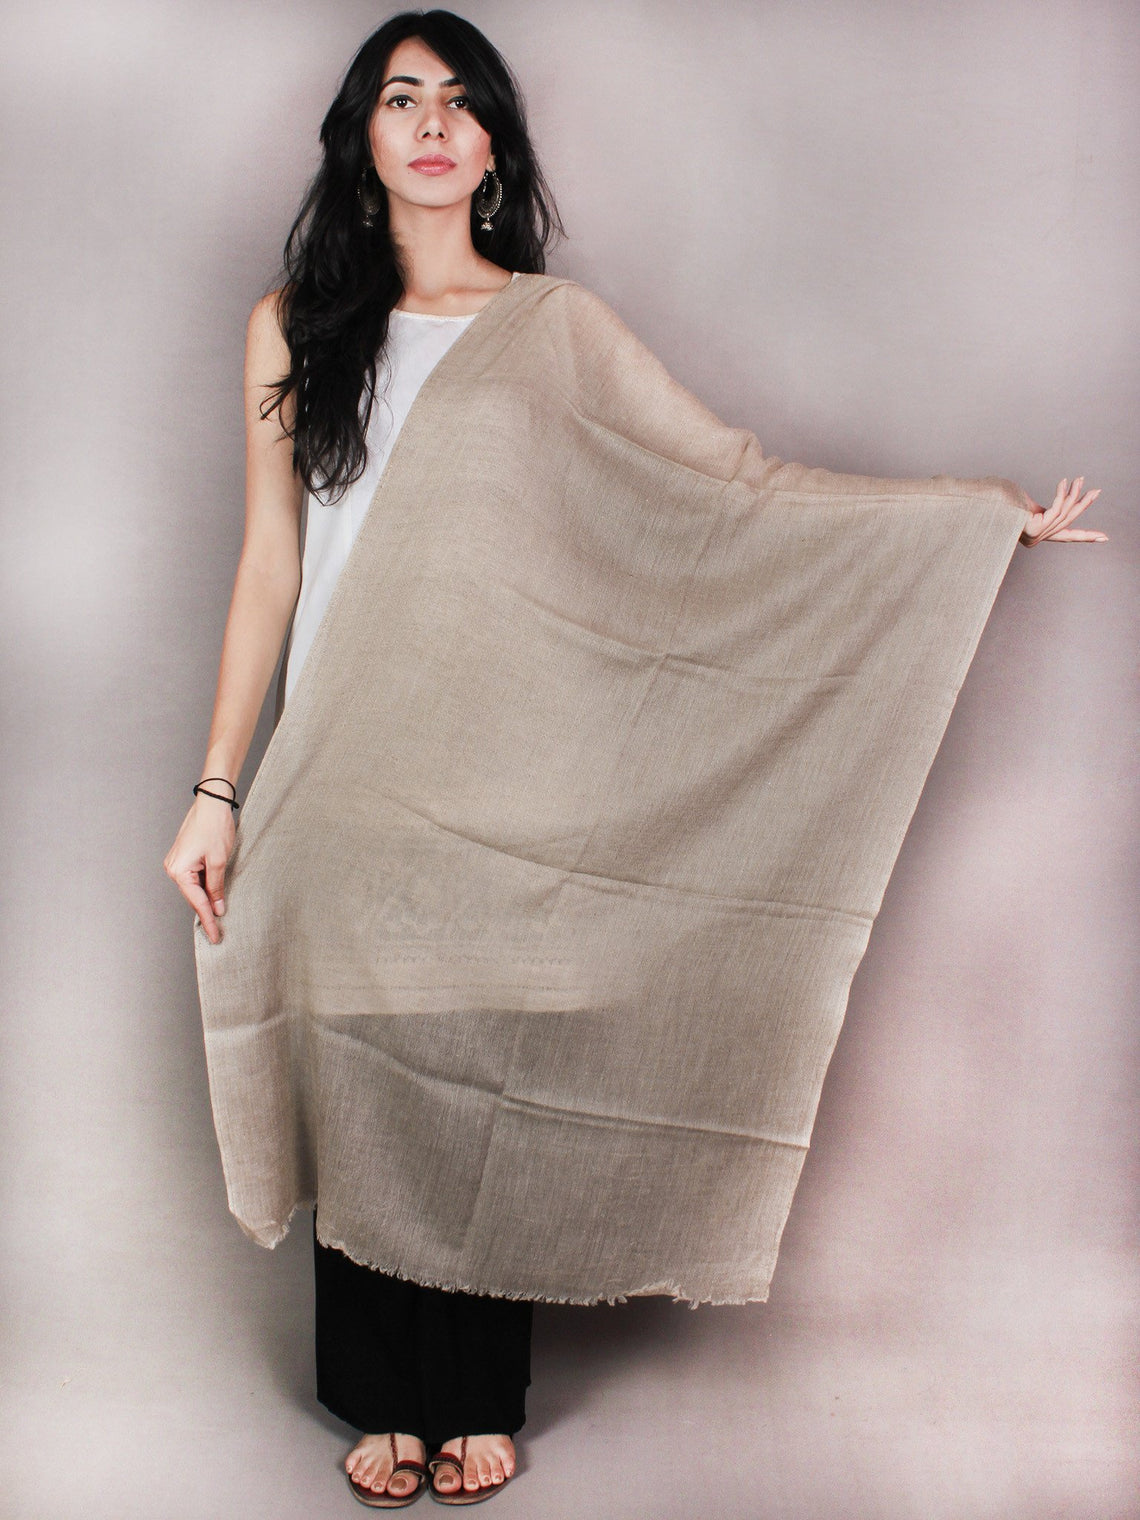 Brown Pure Pashmina Handloom Stole from Kashmir - S6317092